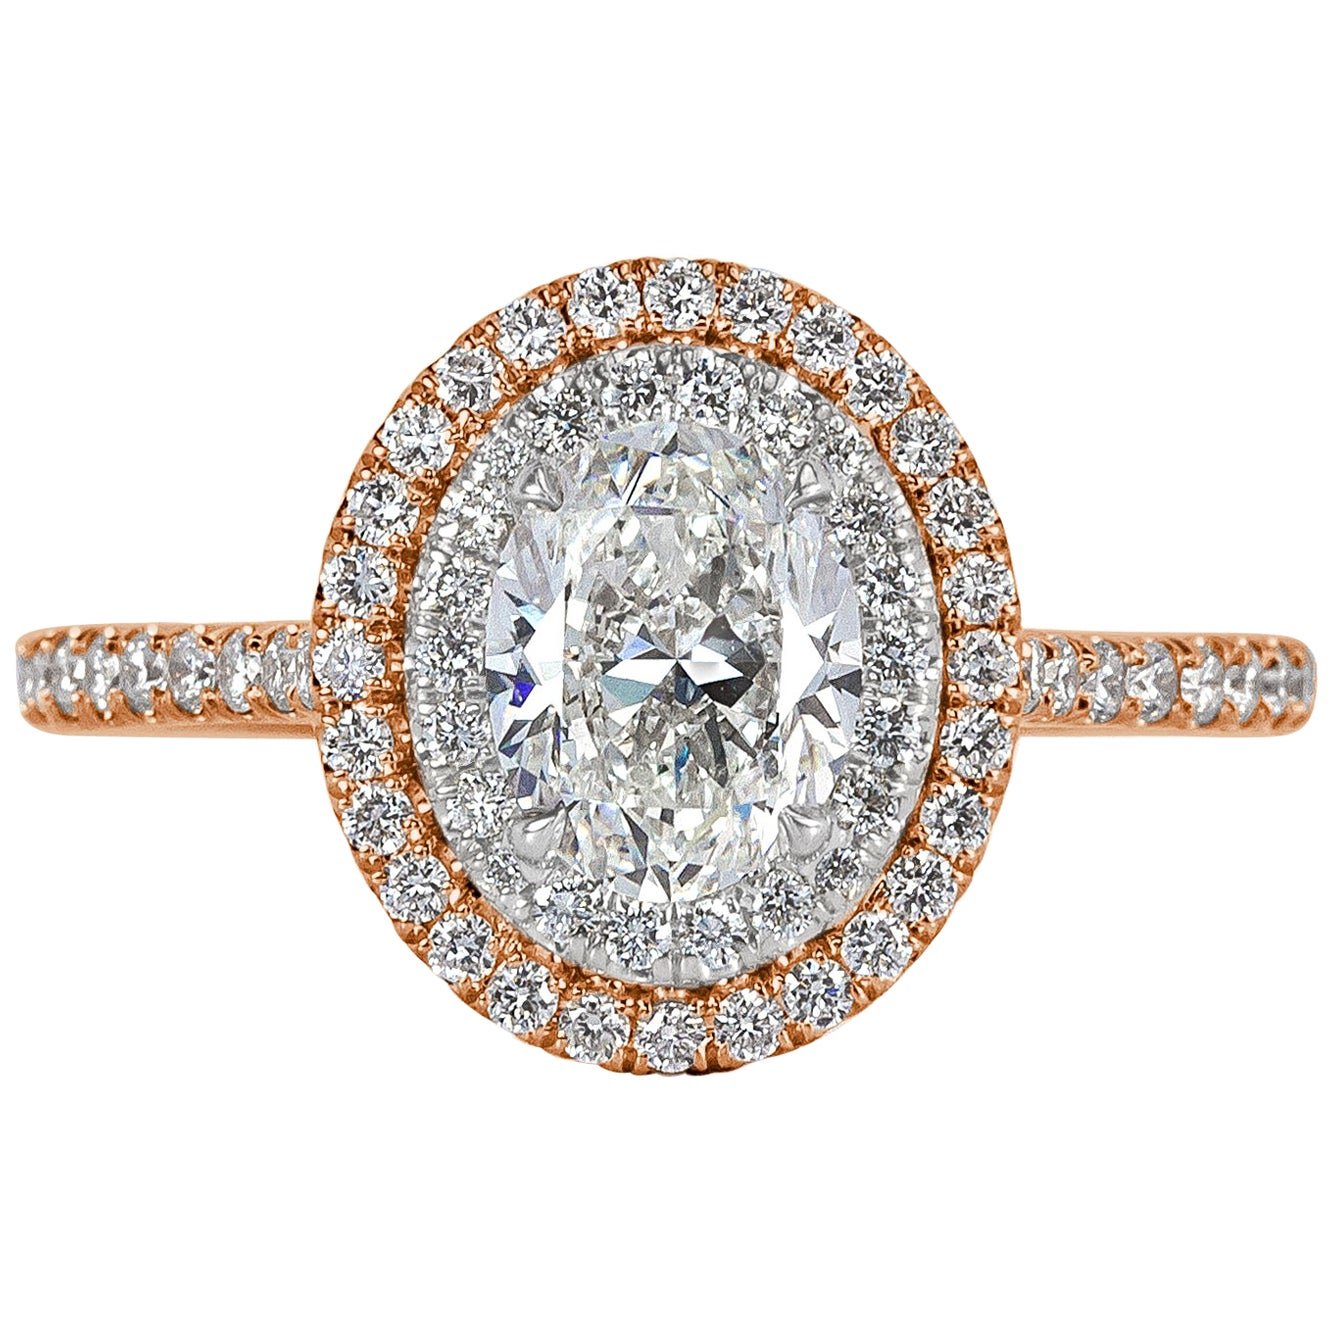 Mark Broumand 1.57 Carat Oval Cut Diamond Engagement Ring